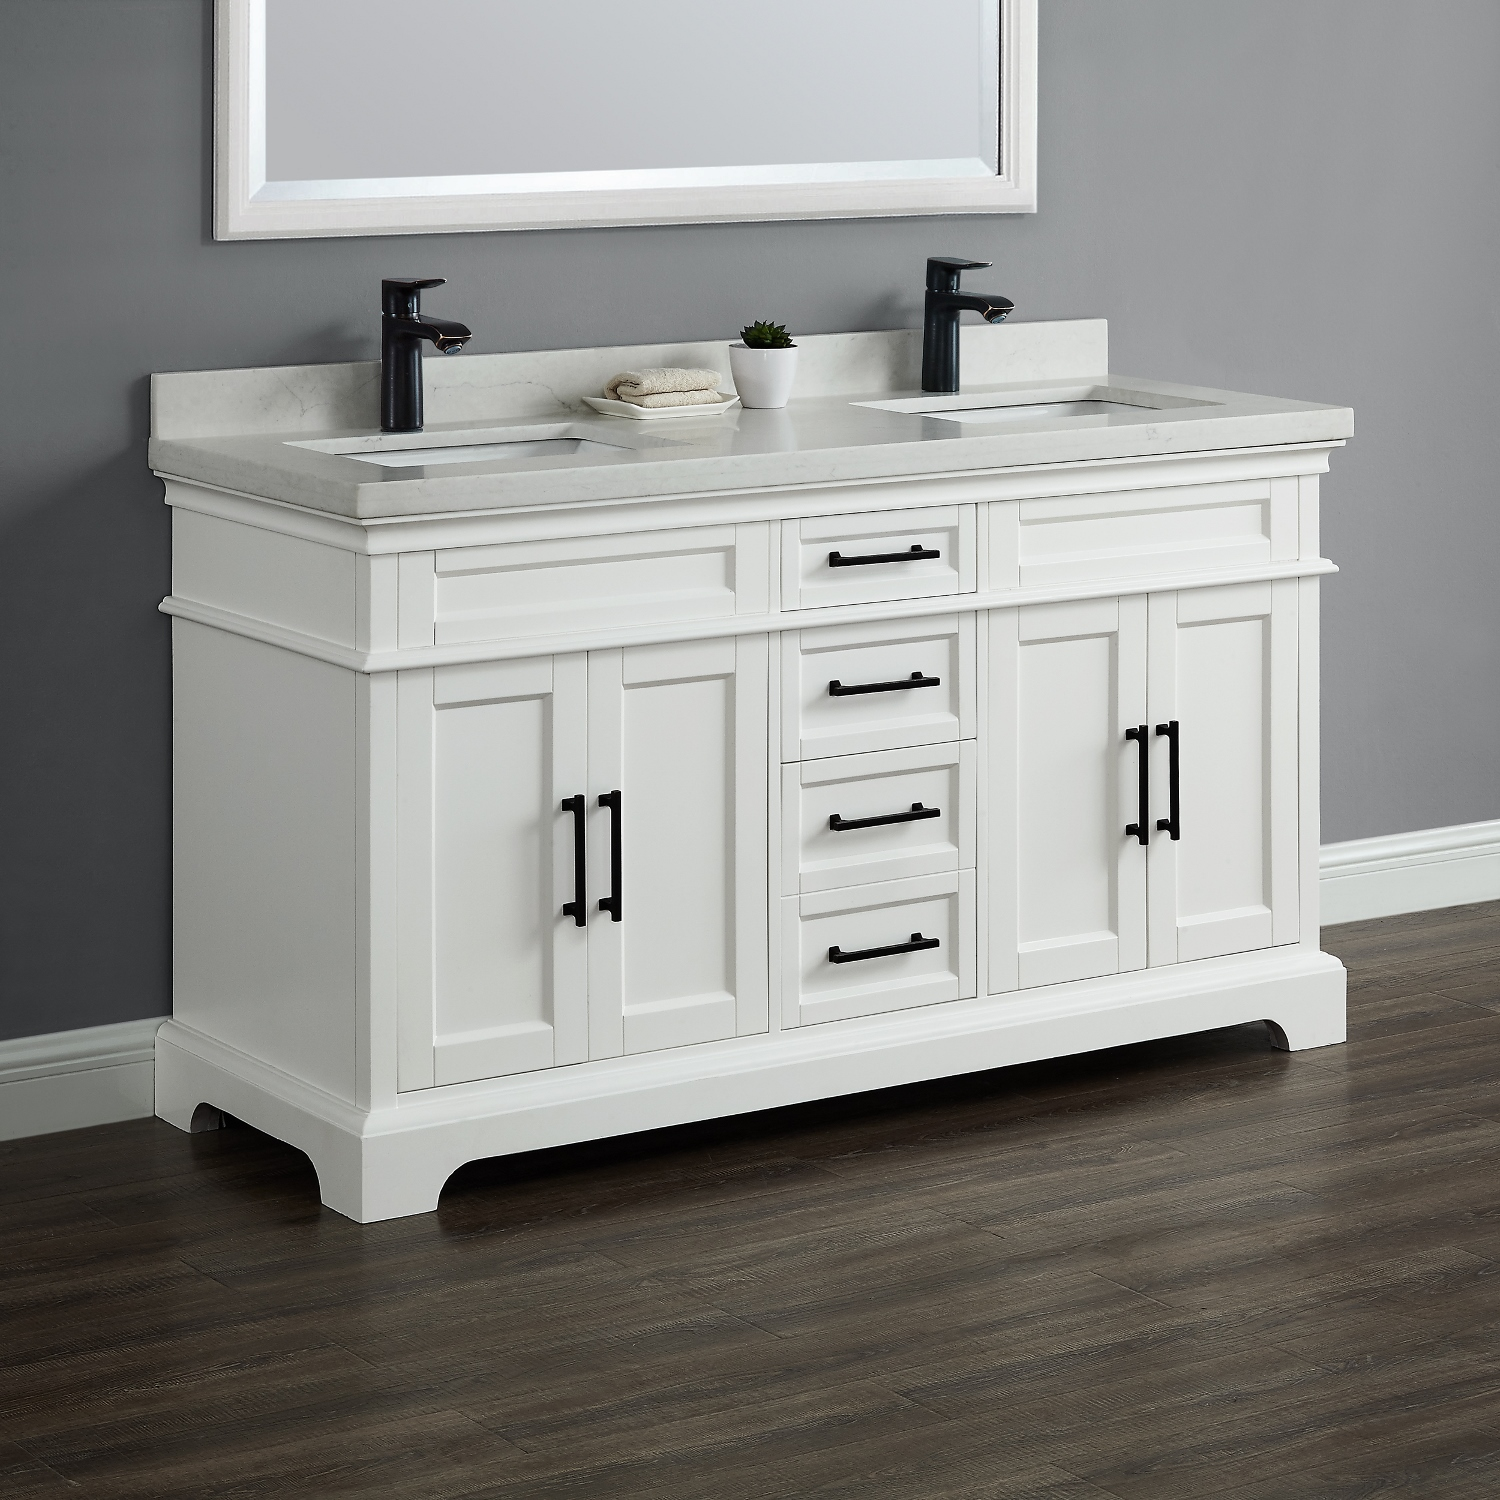 60 Double Sink Vanity IMG 1138 1 1500 Chandler Mission Hills Furniture